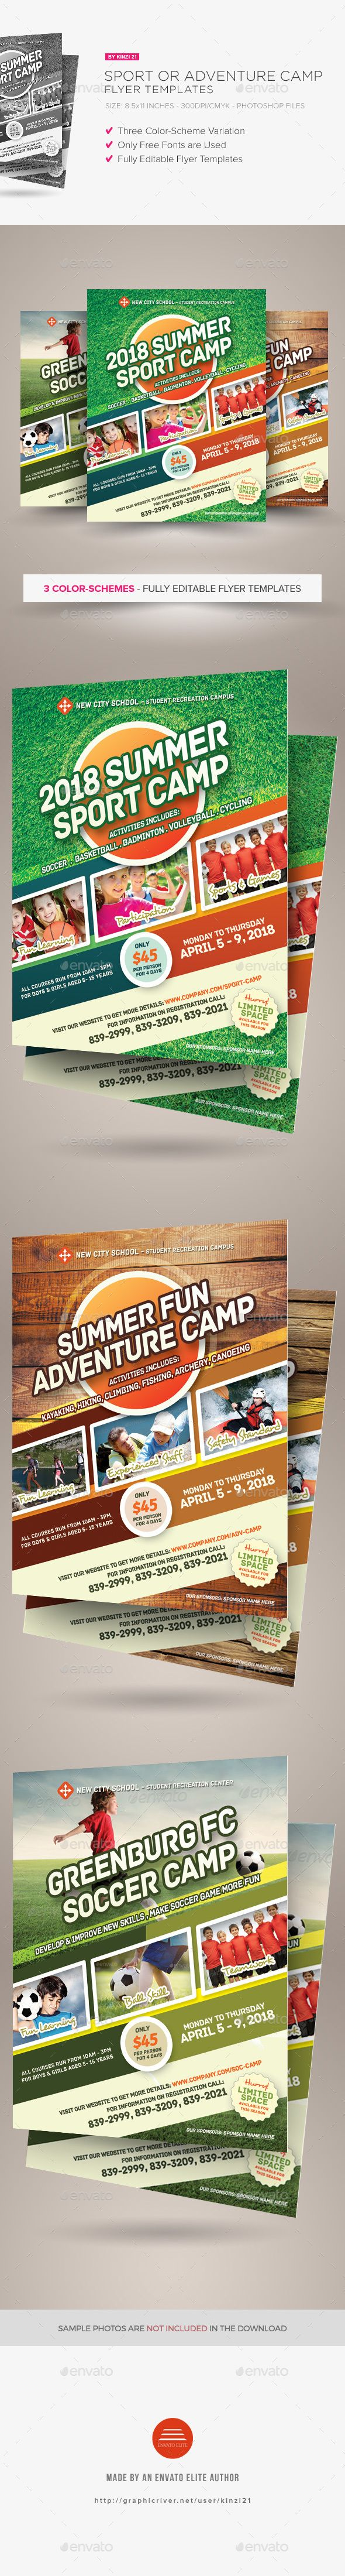 Sport Or Adventure Camp Flyers Pinterest Flyer Template